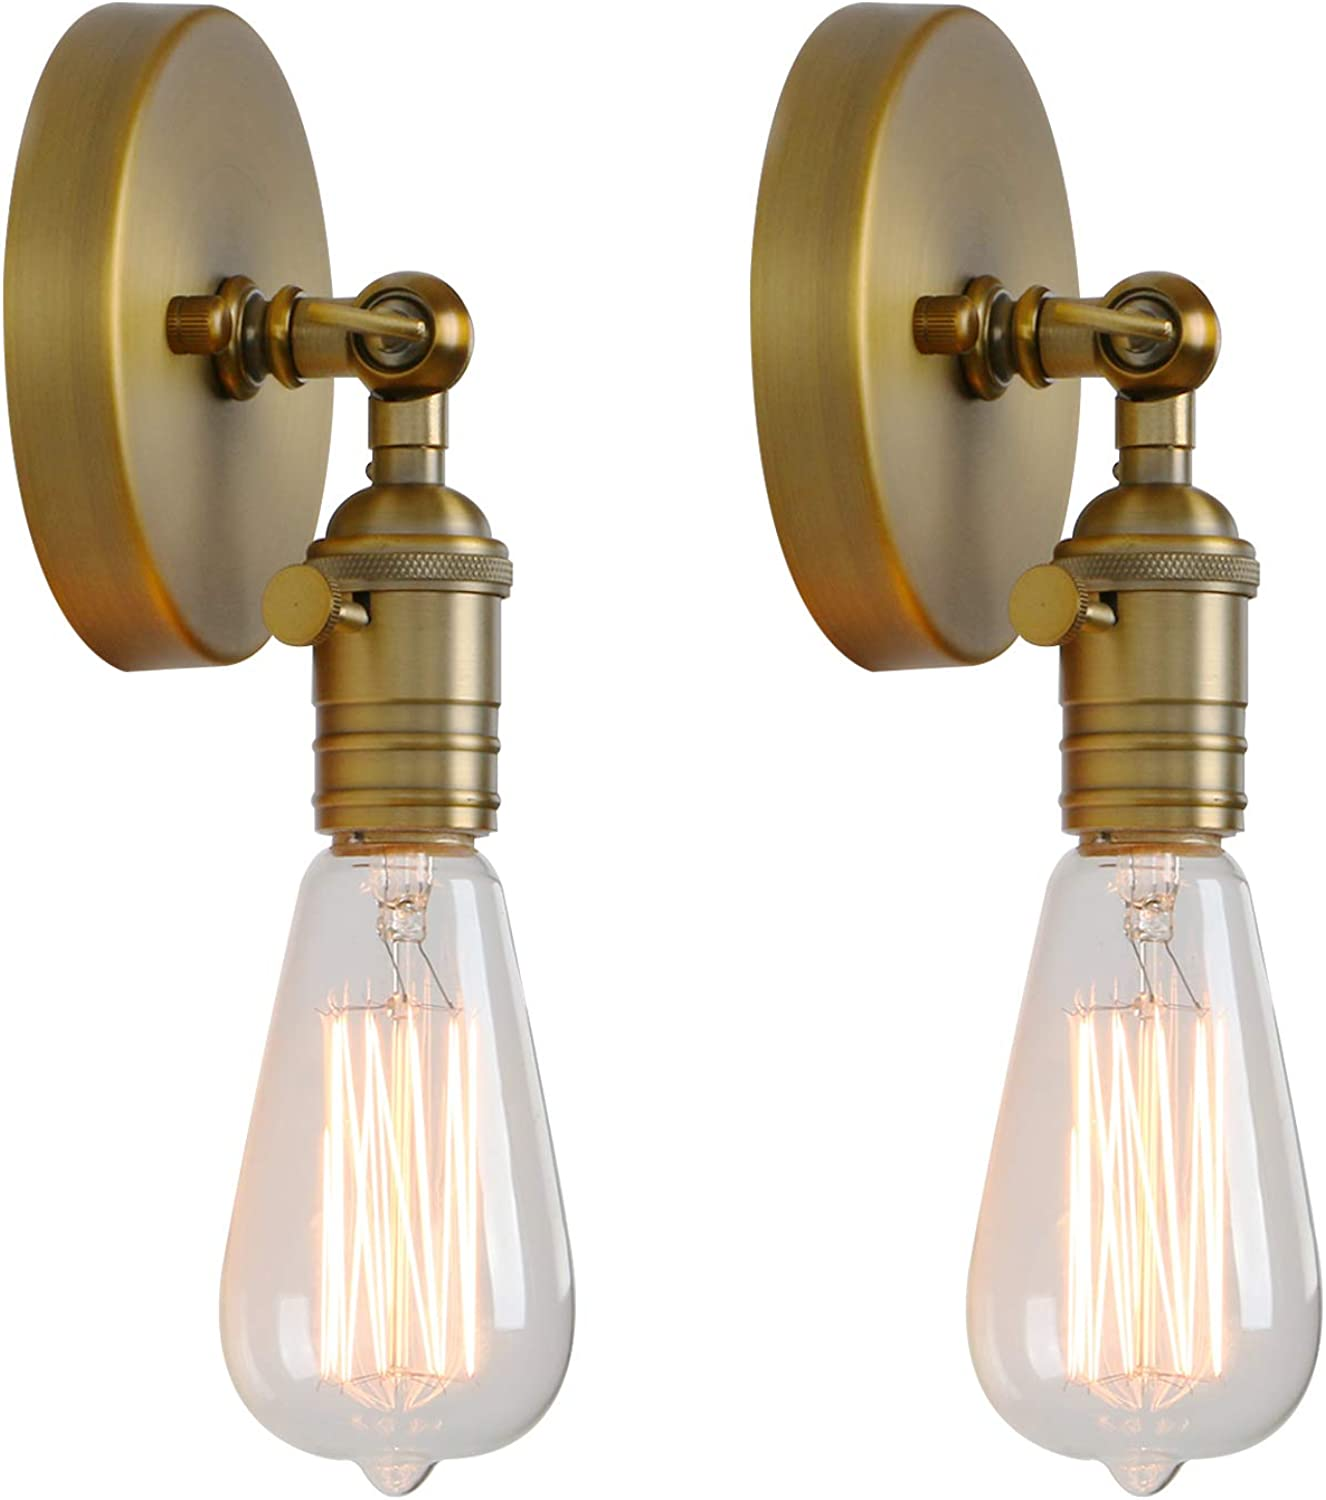 Permo Set of 2 Minimalist Single Socket Wall Sconce Lighting with On Off Switch (Antique)